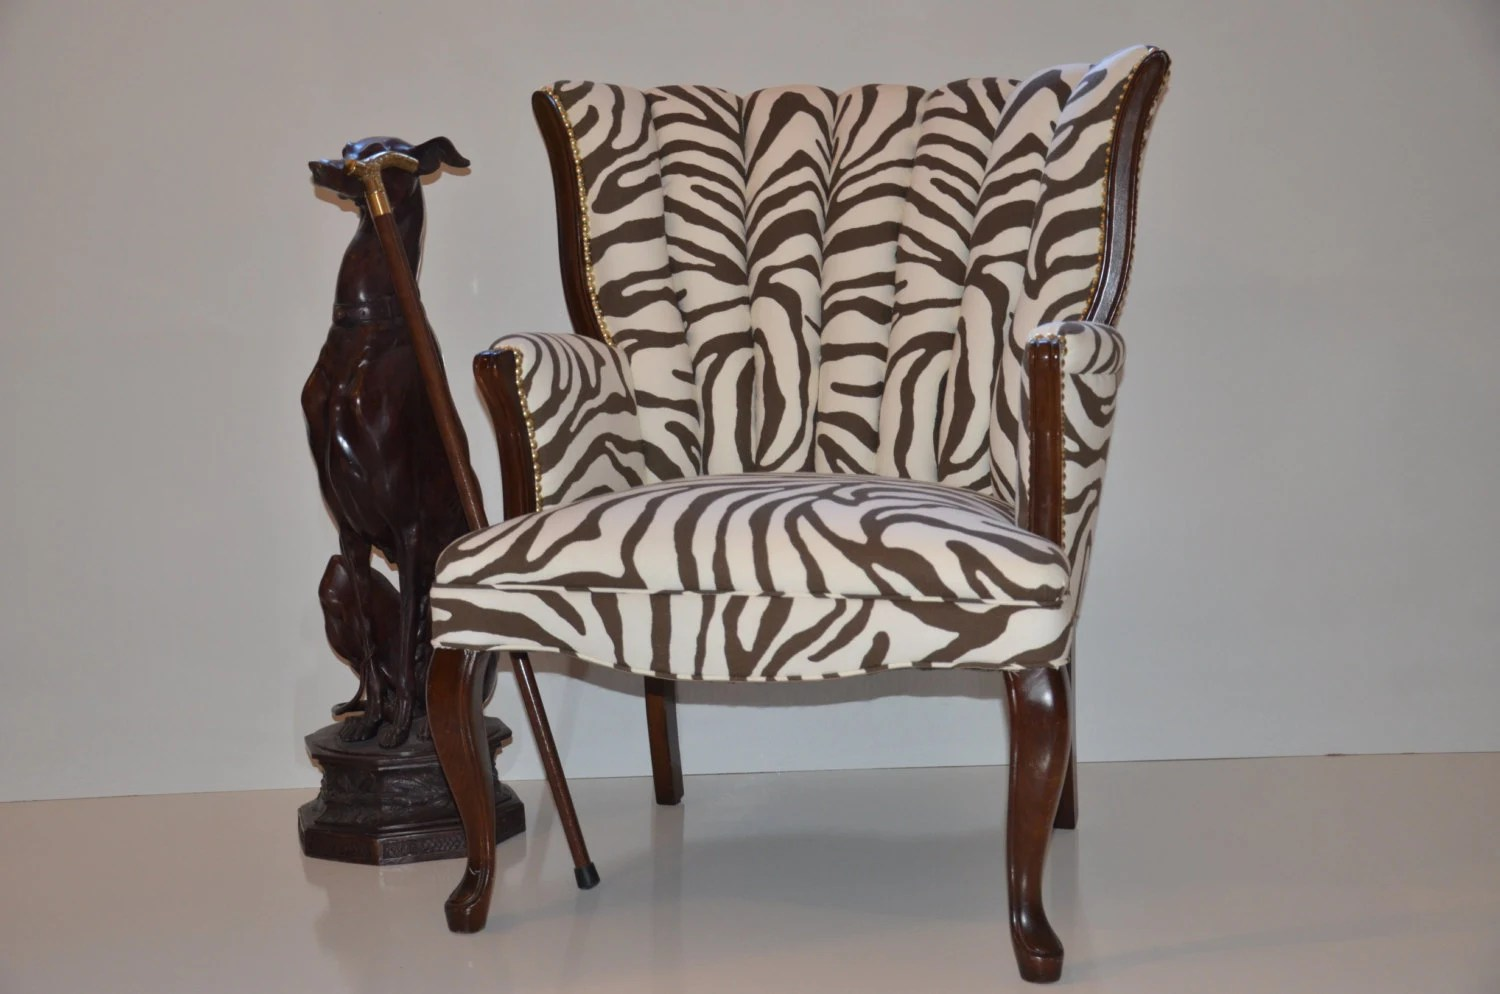 sold vintage shell chair brown